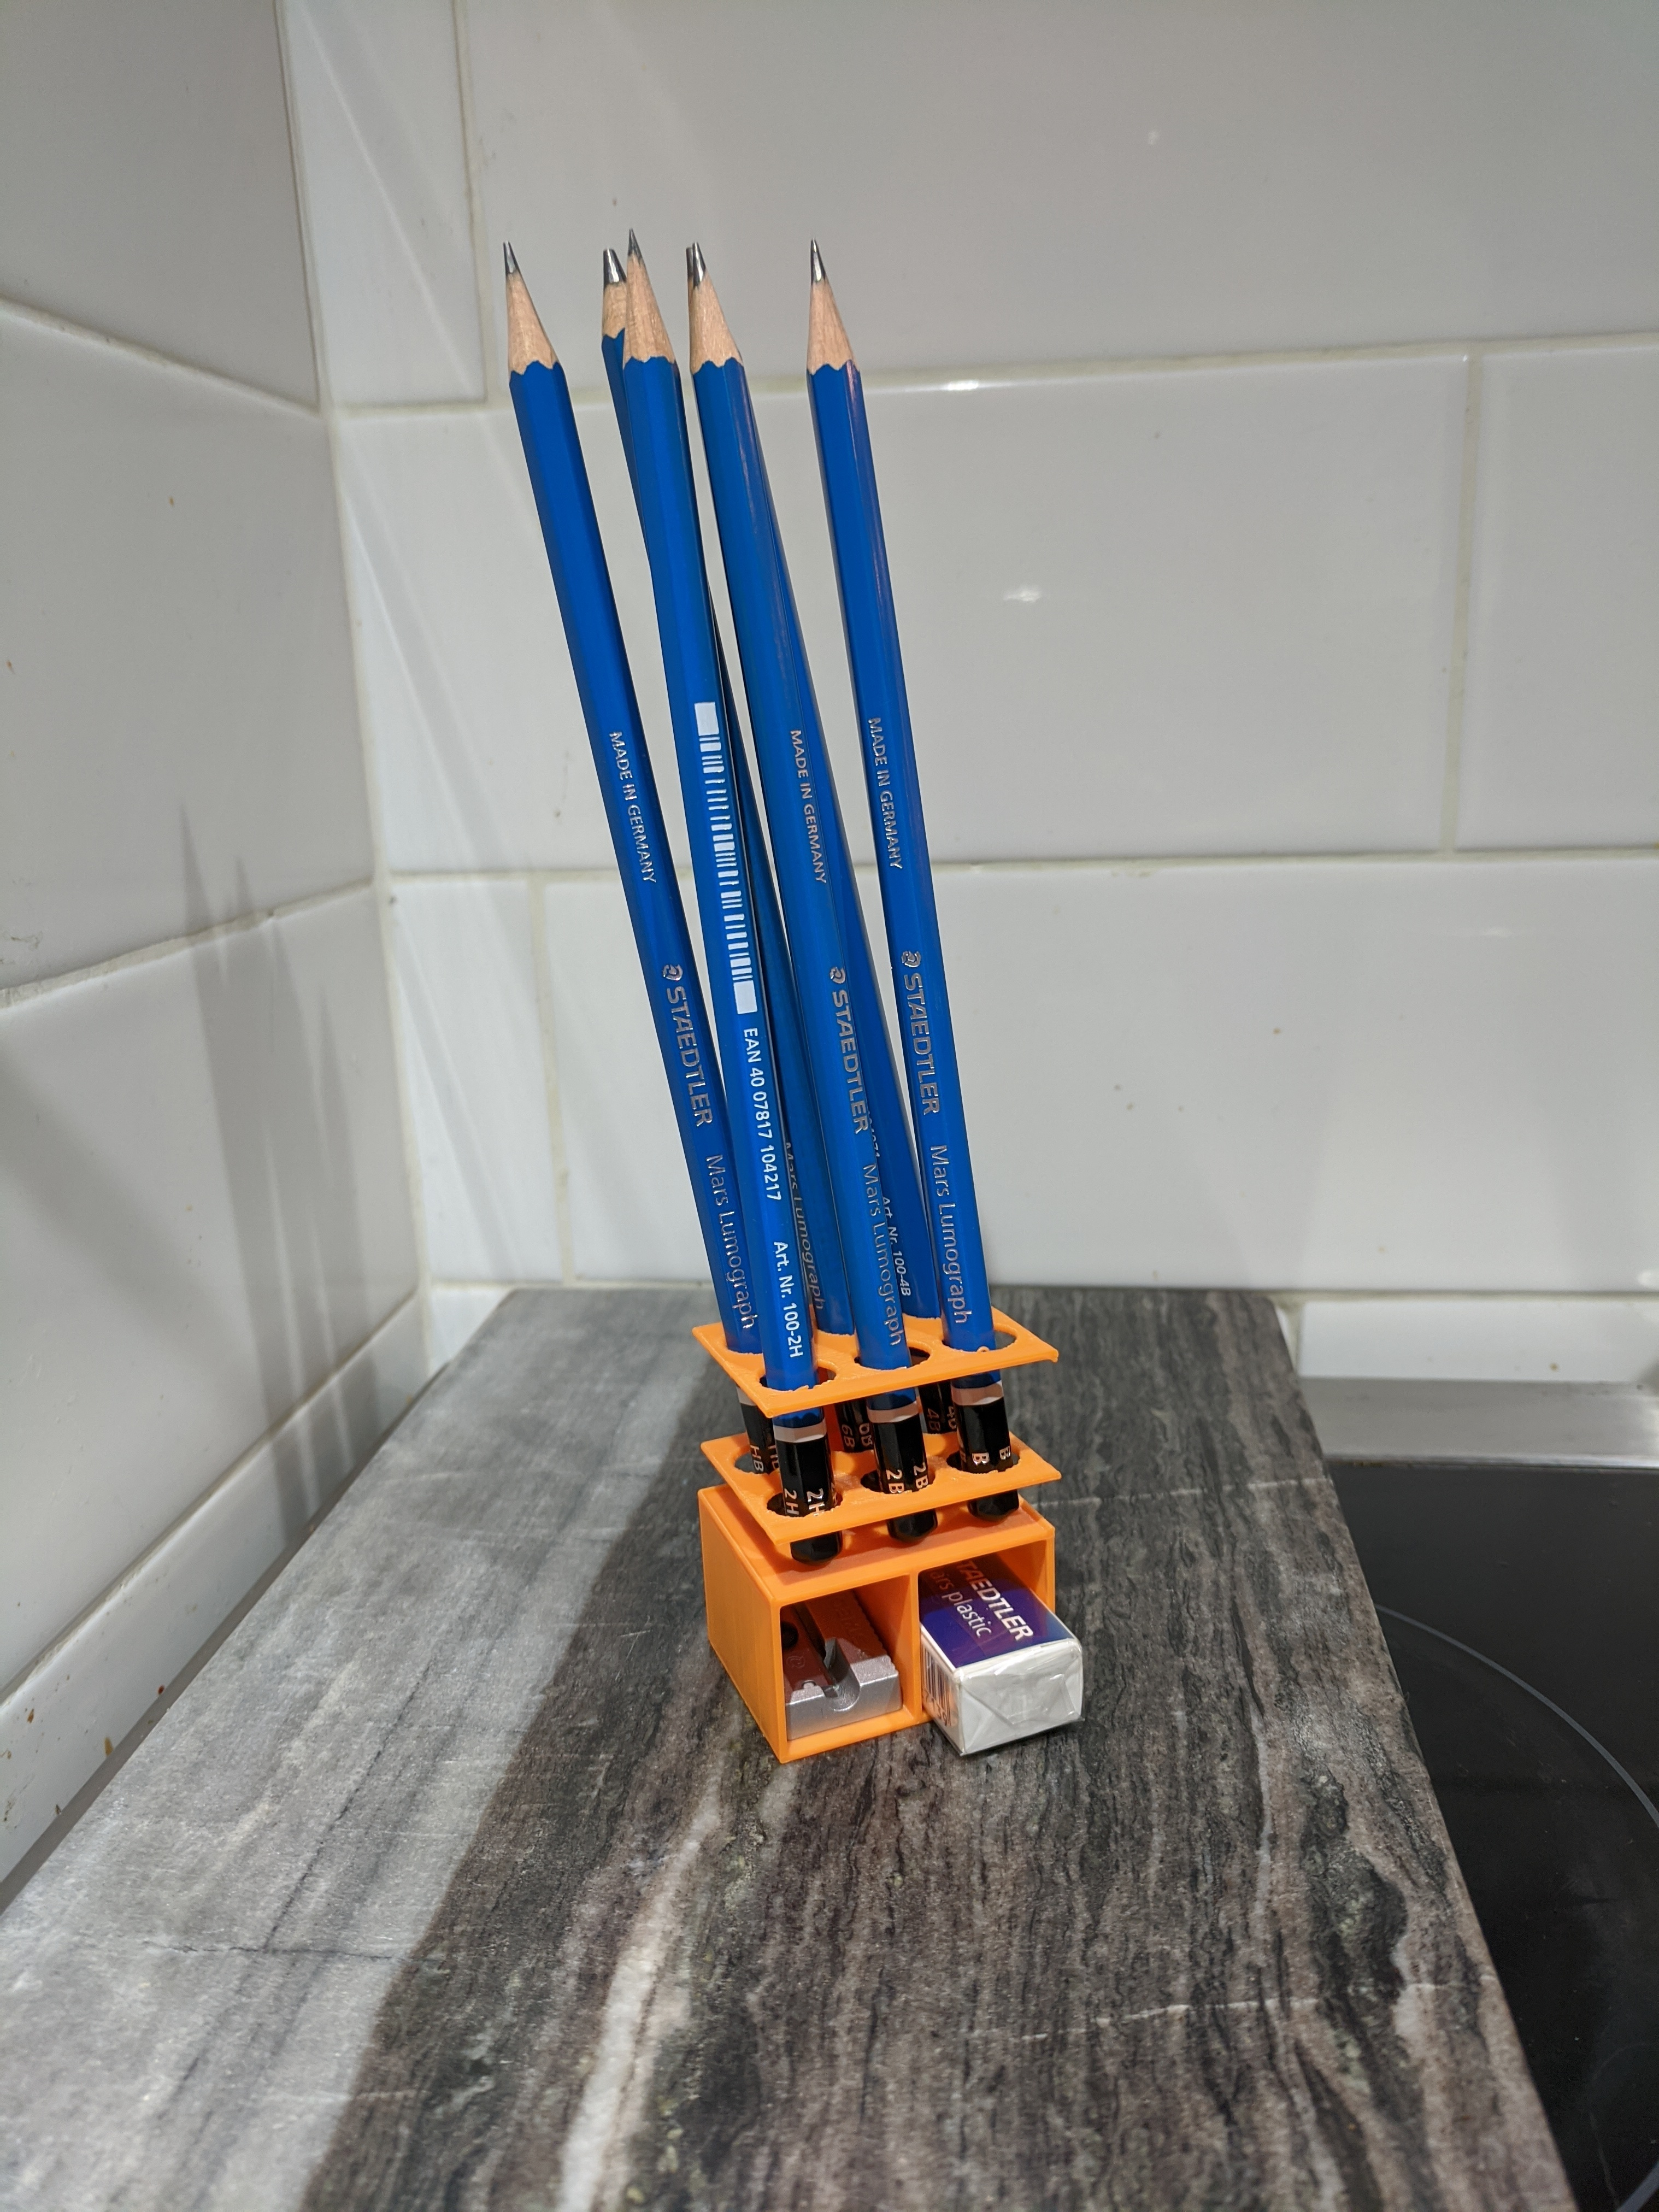 IMG_20200302_225241_1.jpg Download free STL file Pencil Holder With Storage • 3D printing model, jhaig101